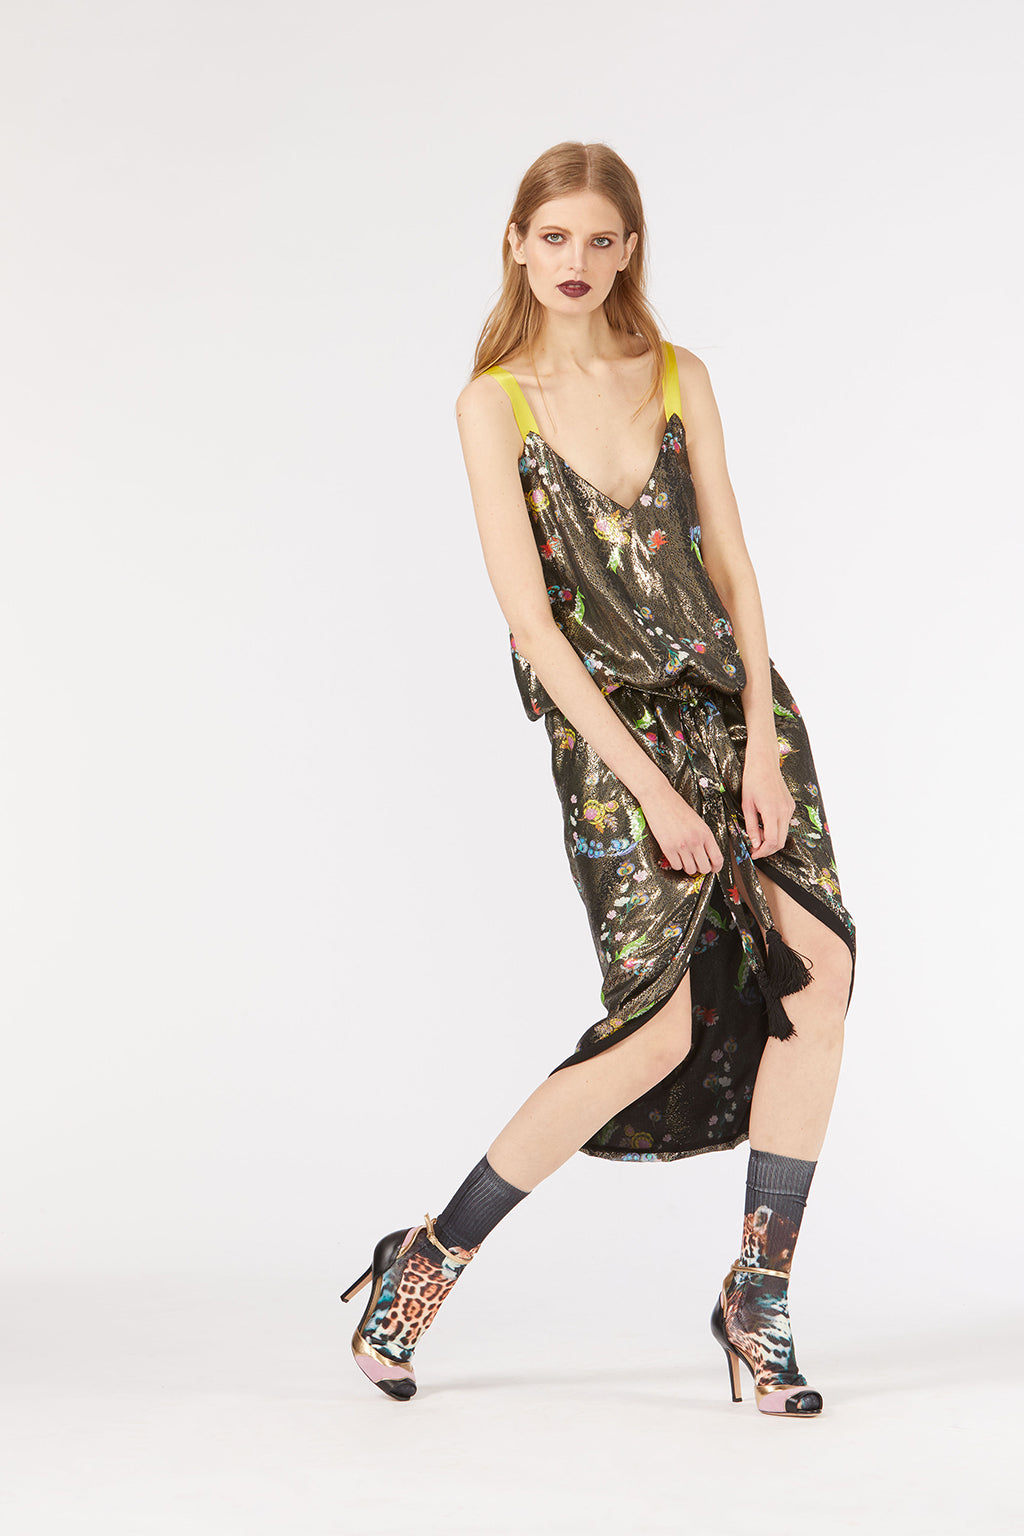 Cynthia Rowley Fall 2018 look 29 featuring a drop waist v-neck dress in metallic floral printed silk.